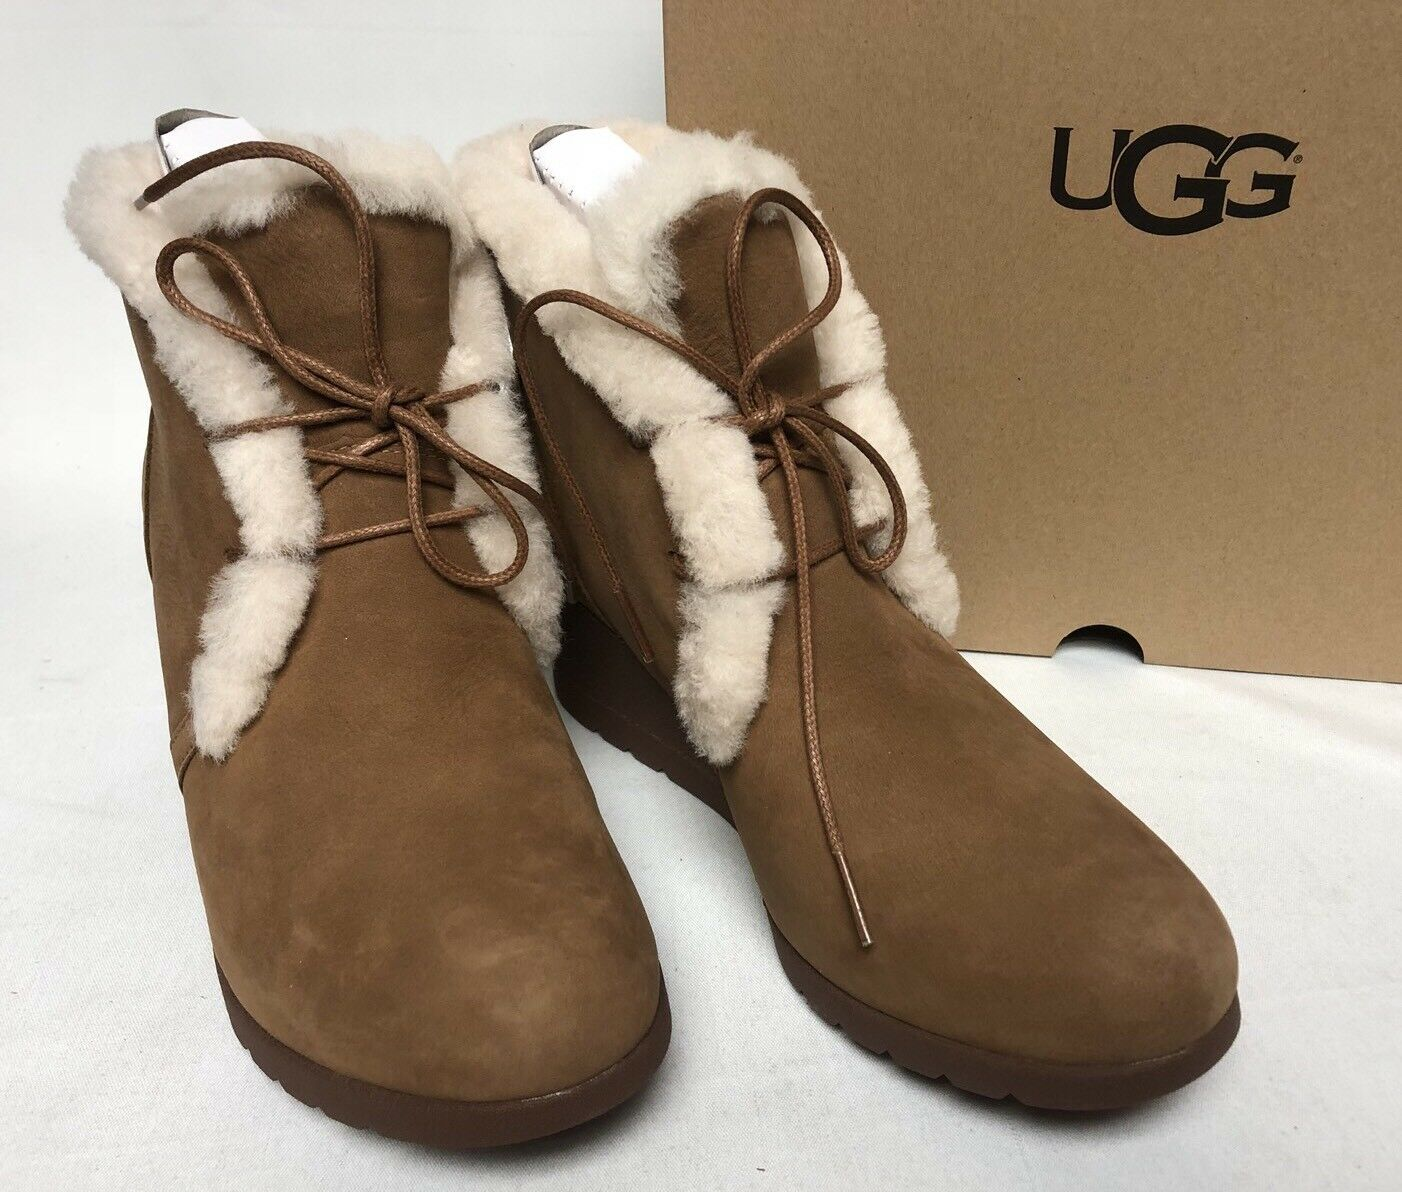 07591373b6f UGG Australia Jeovana Boots Chestnut Suede Waterproof WP 1017421 Wedge Lace  Up